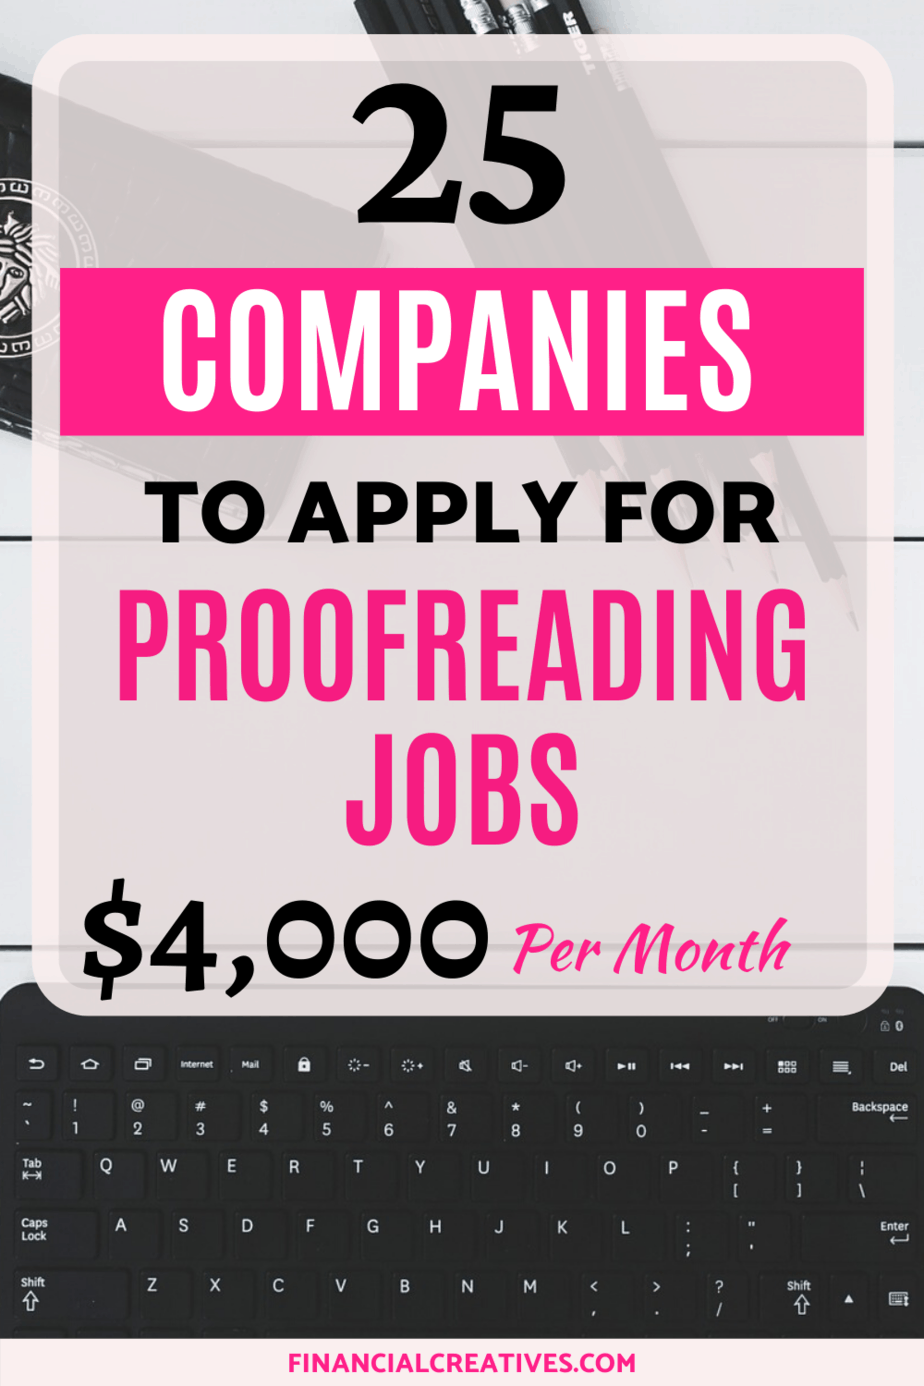 legitimate proofreading jobs online with no experience requir